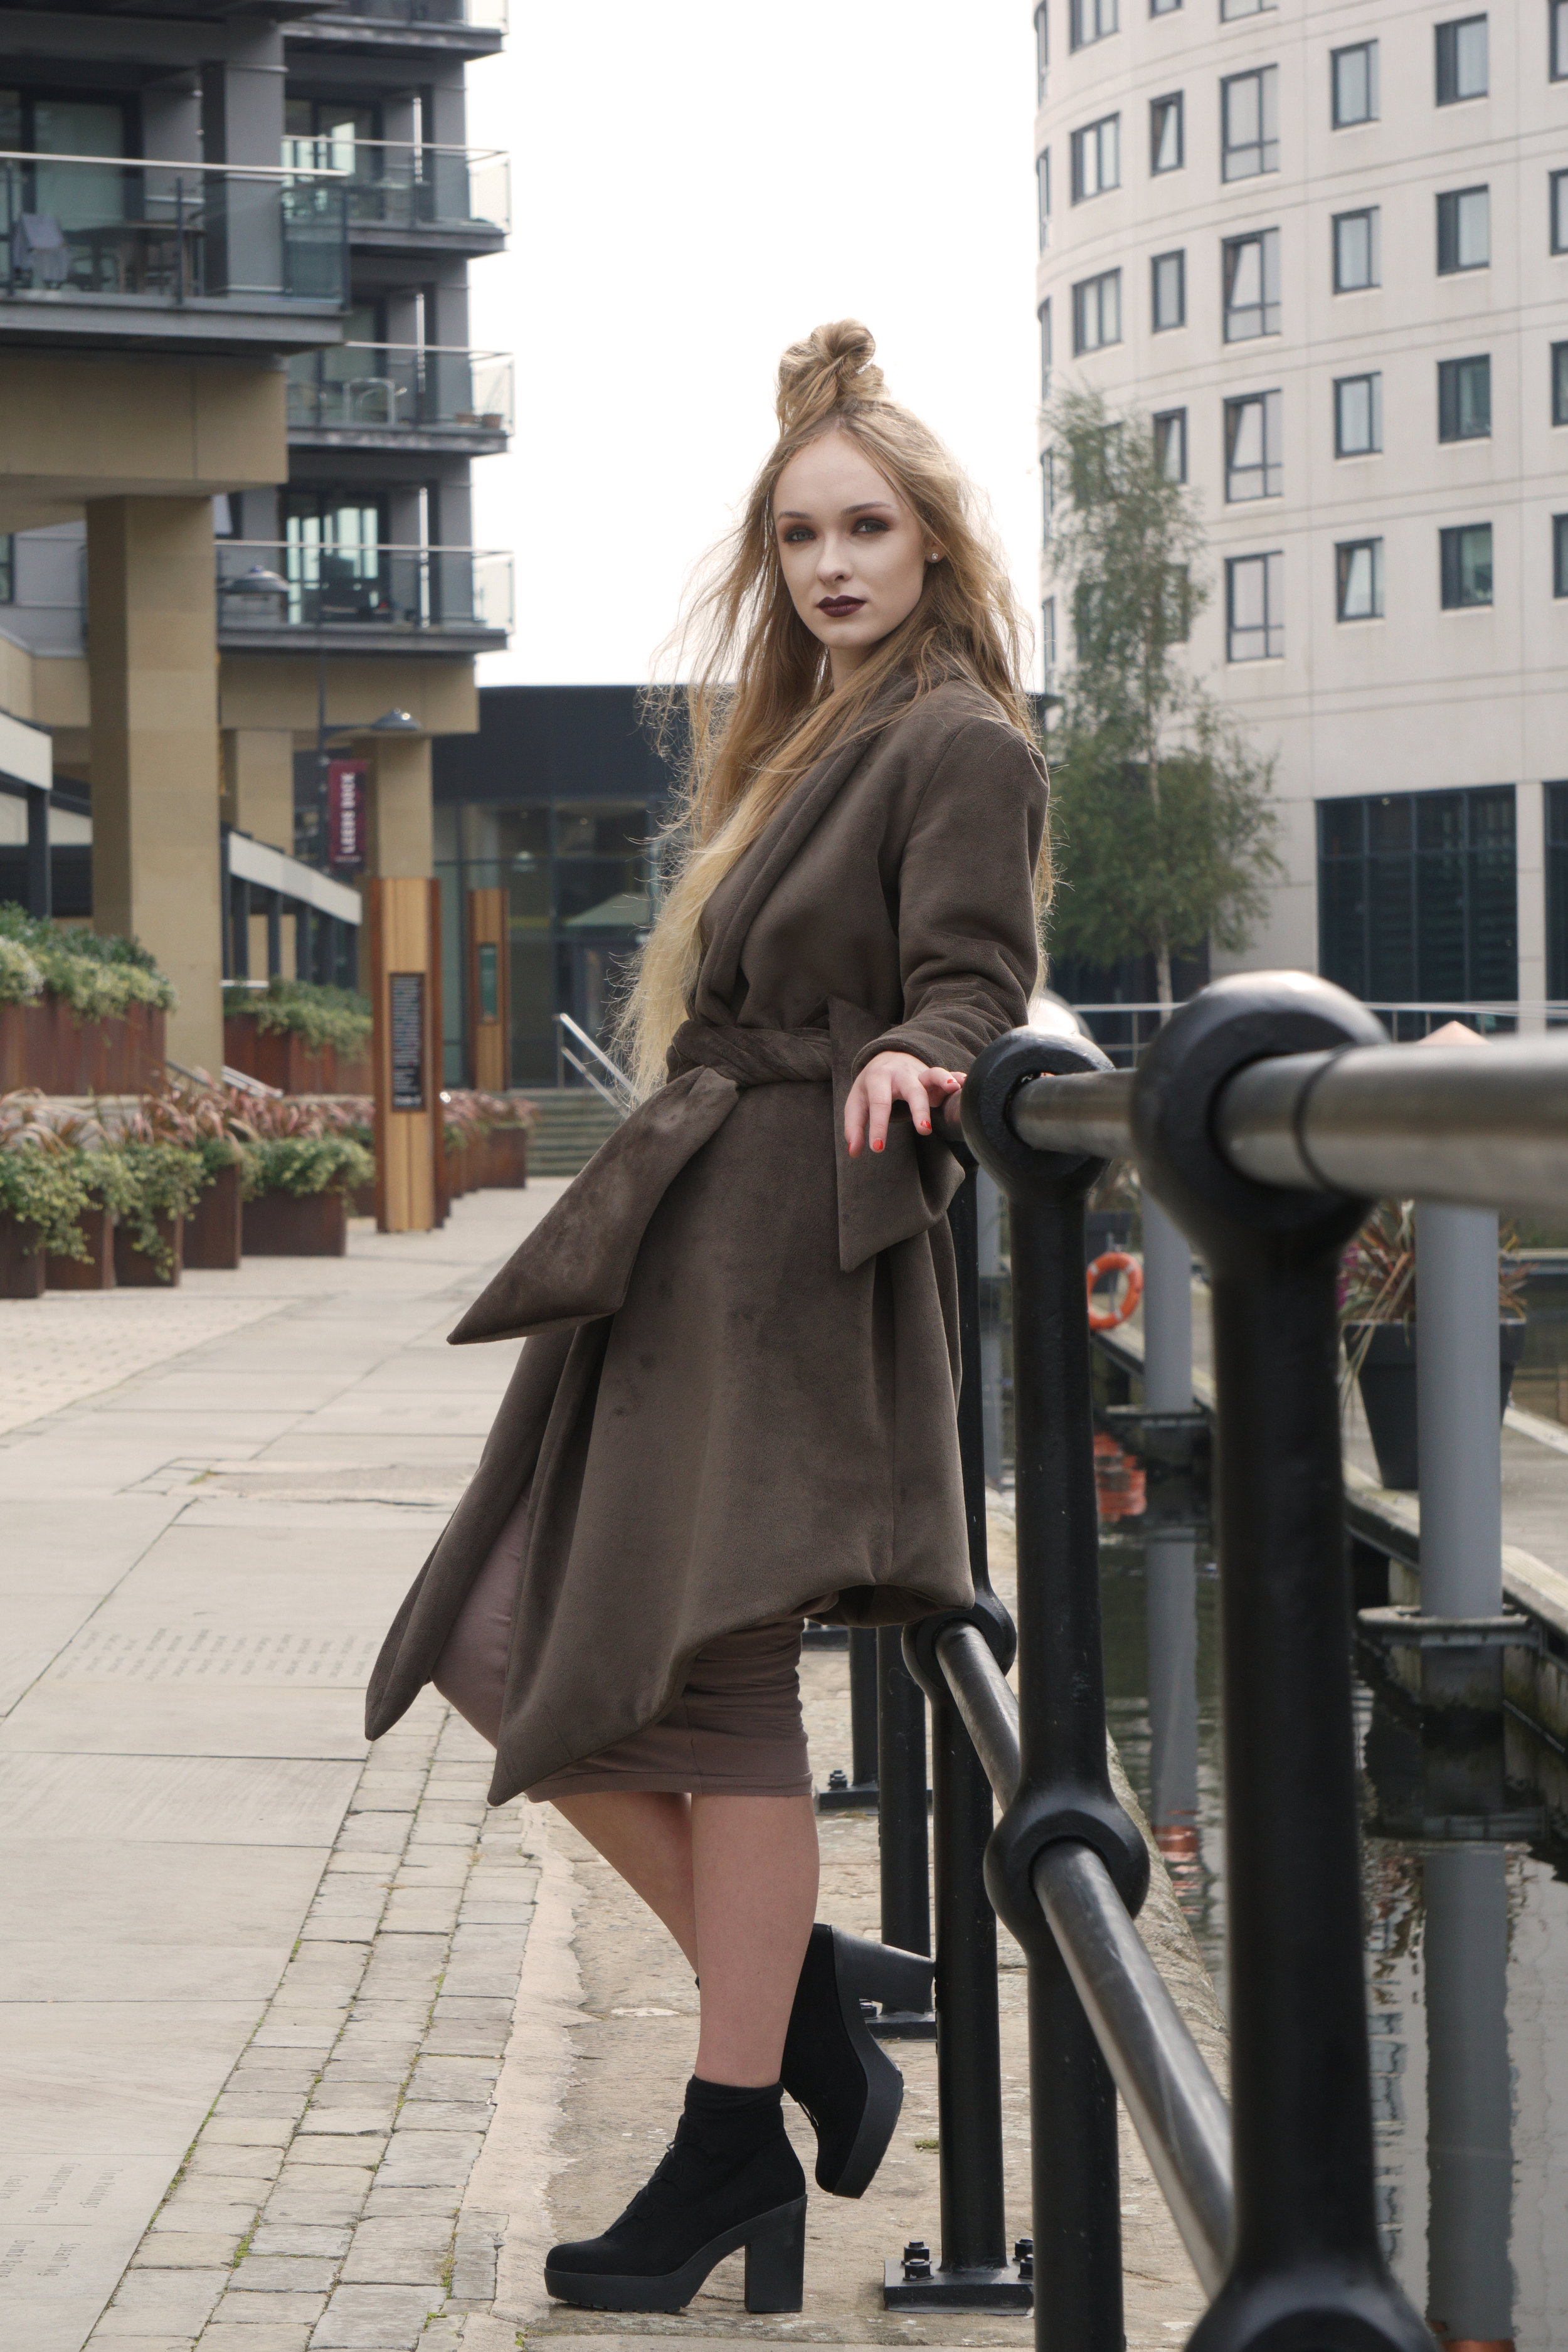 zaramia-ava-zaramiaava-leeds-fashion-designer-ethical-sustainable-taupe-versatile-drape-yoko-skirt-mioka-black-mai-coat-leeds-dock-grunge-13